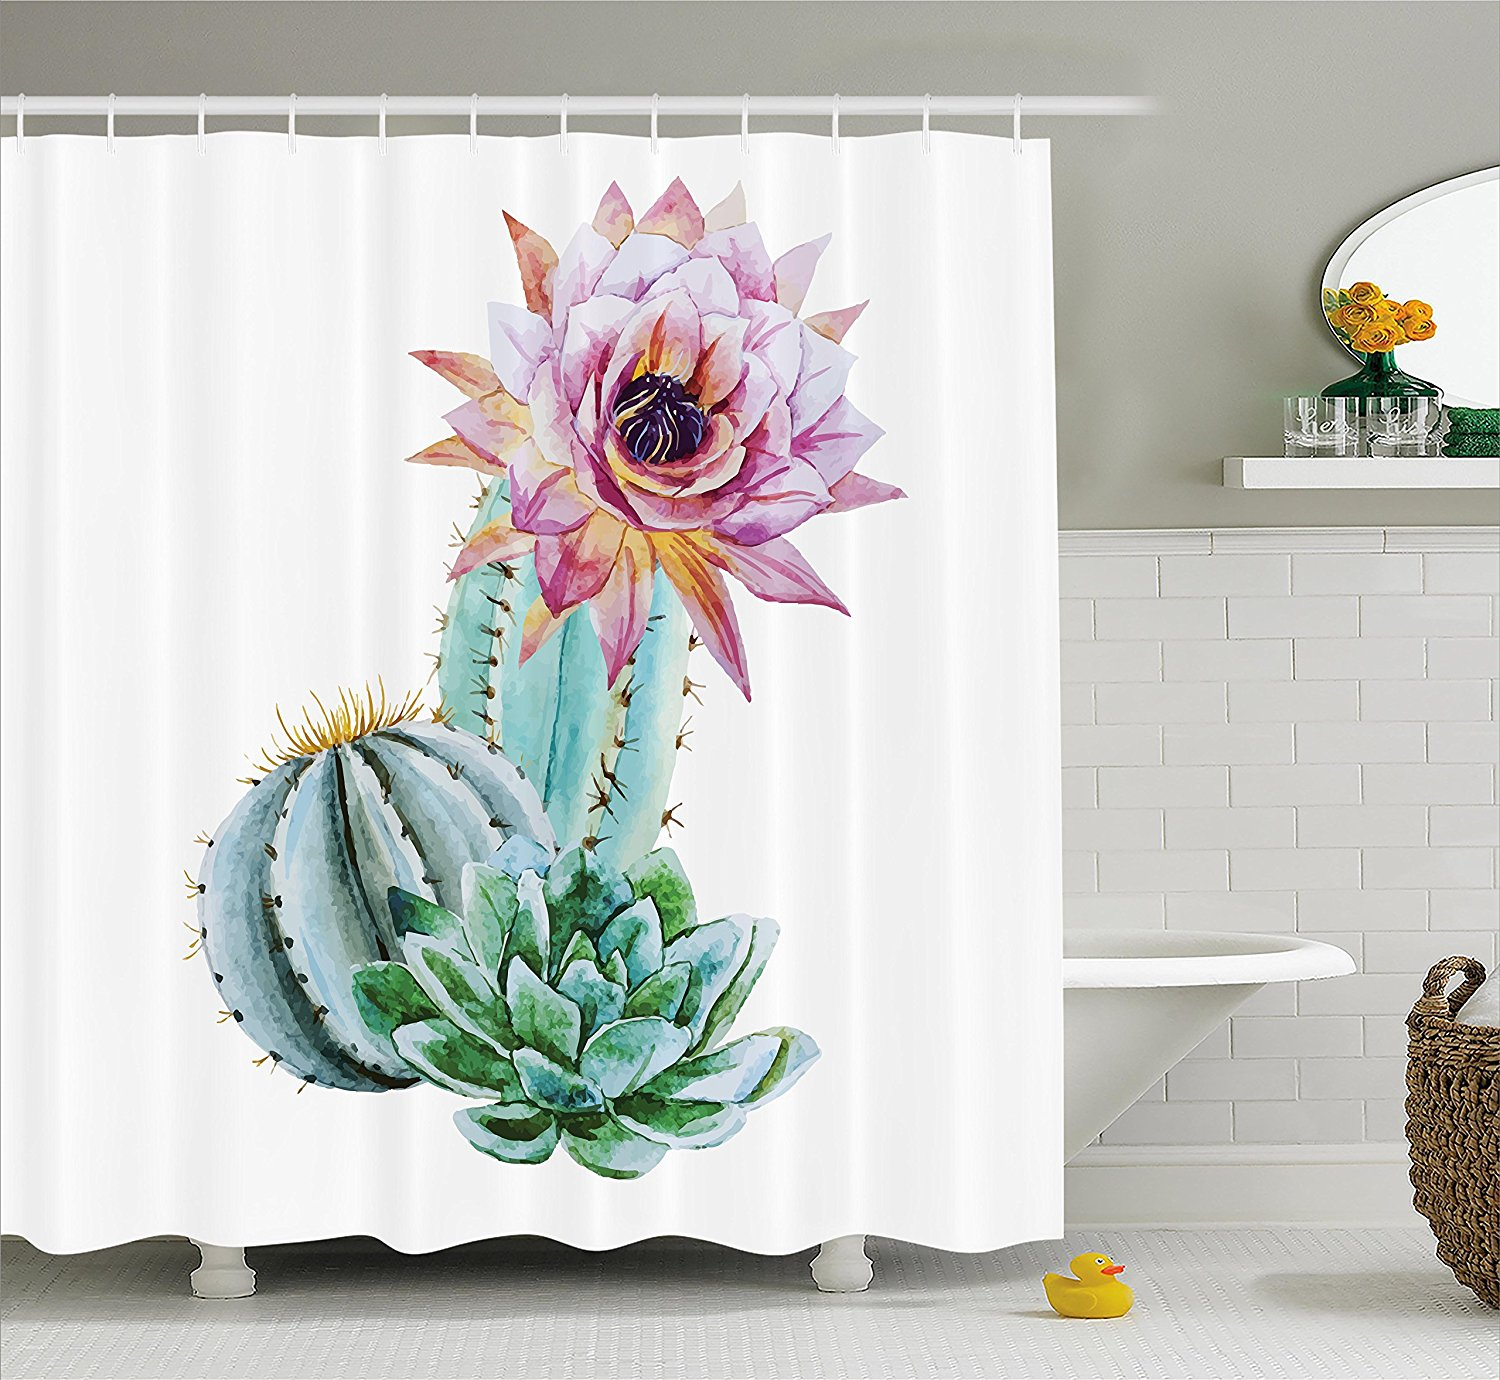 Us 14 17 38 Off Cactus Decor Shower Curtain Cactus Spikes Flower In Hot Mexican Desert Sand Botanic Natural Fabric Bathroom Decor Set In Shower